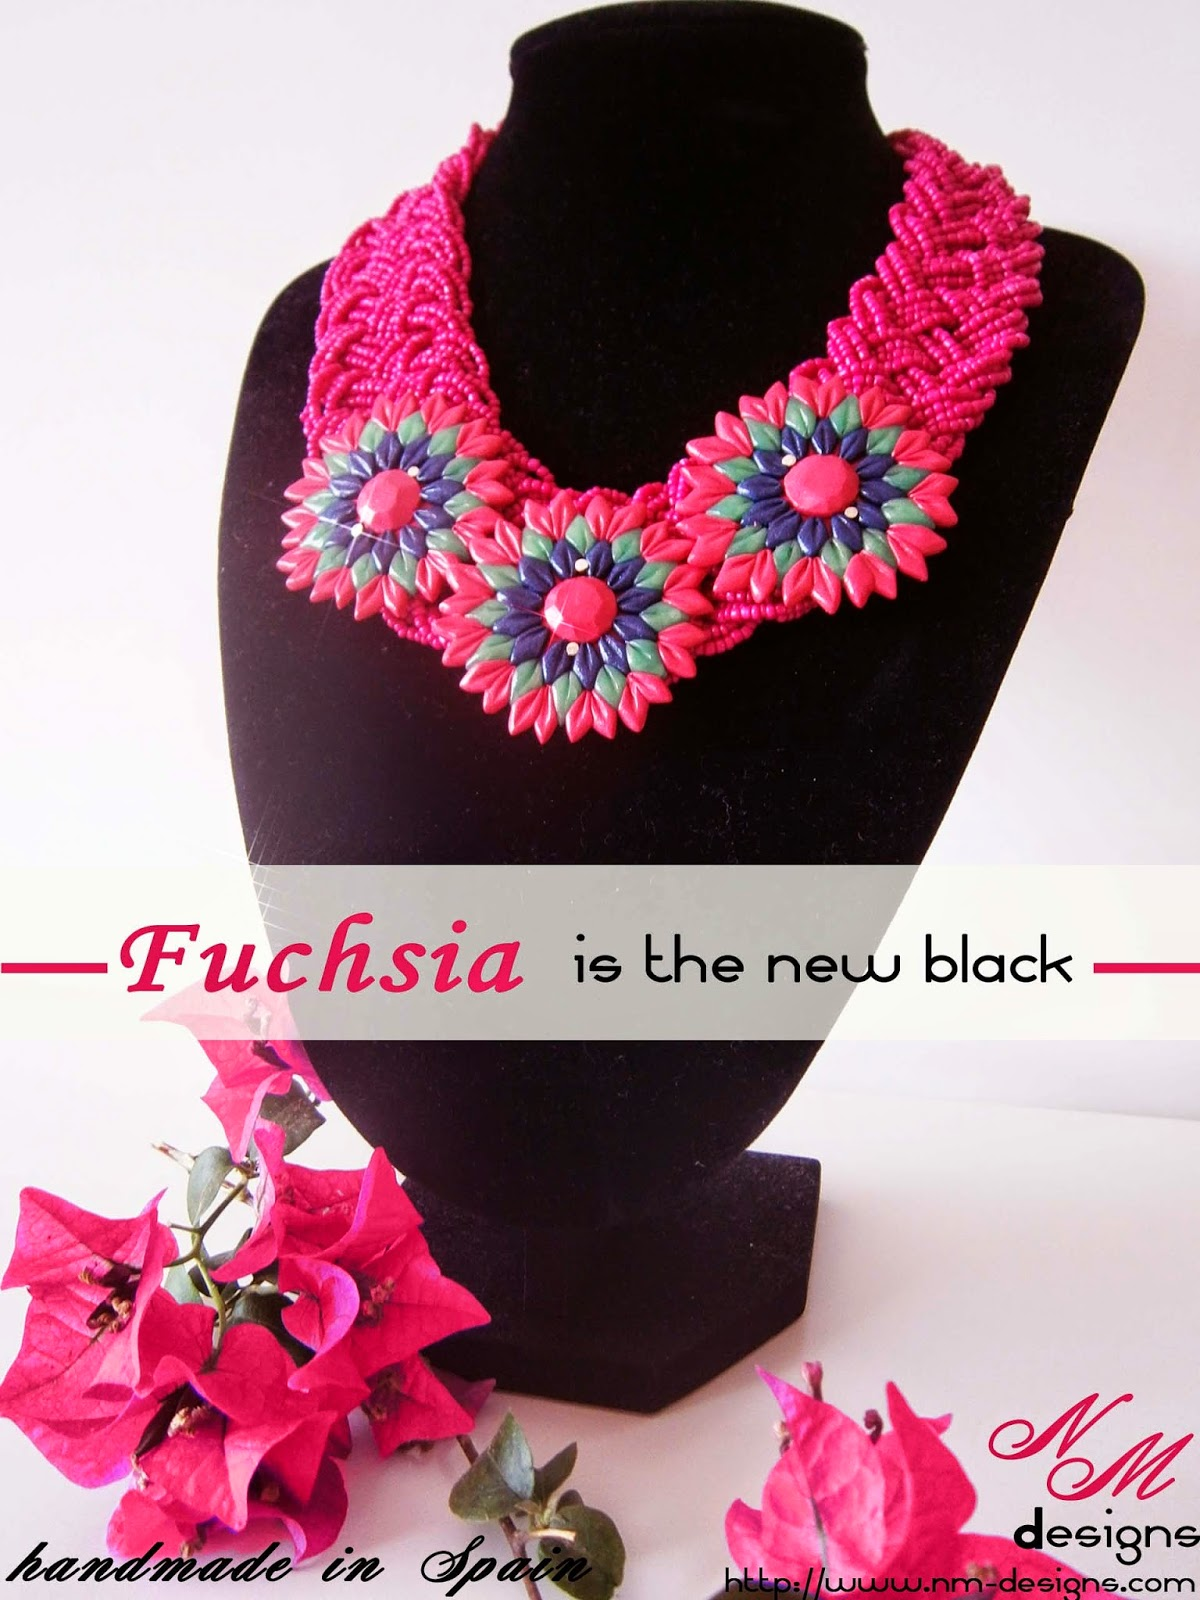 Fuchsia is the new black